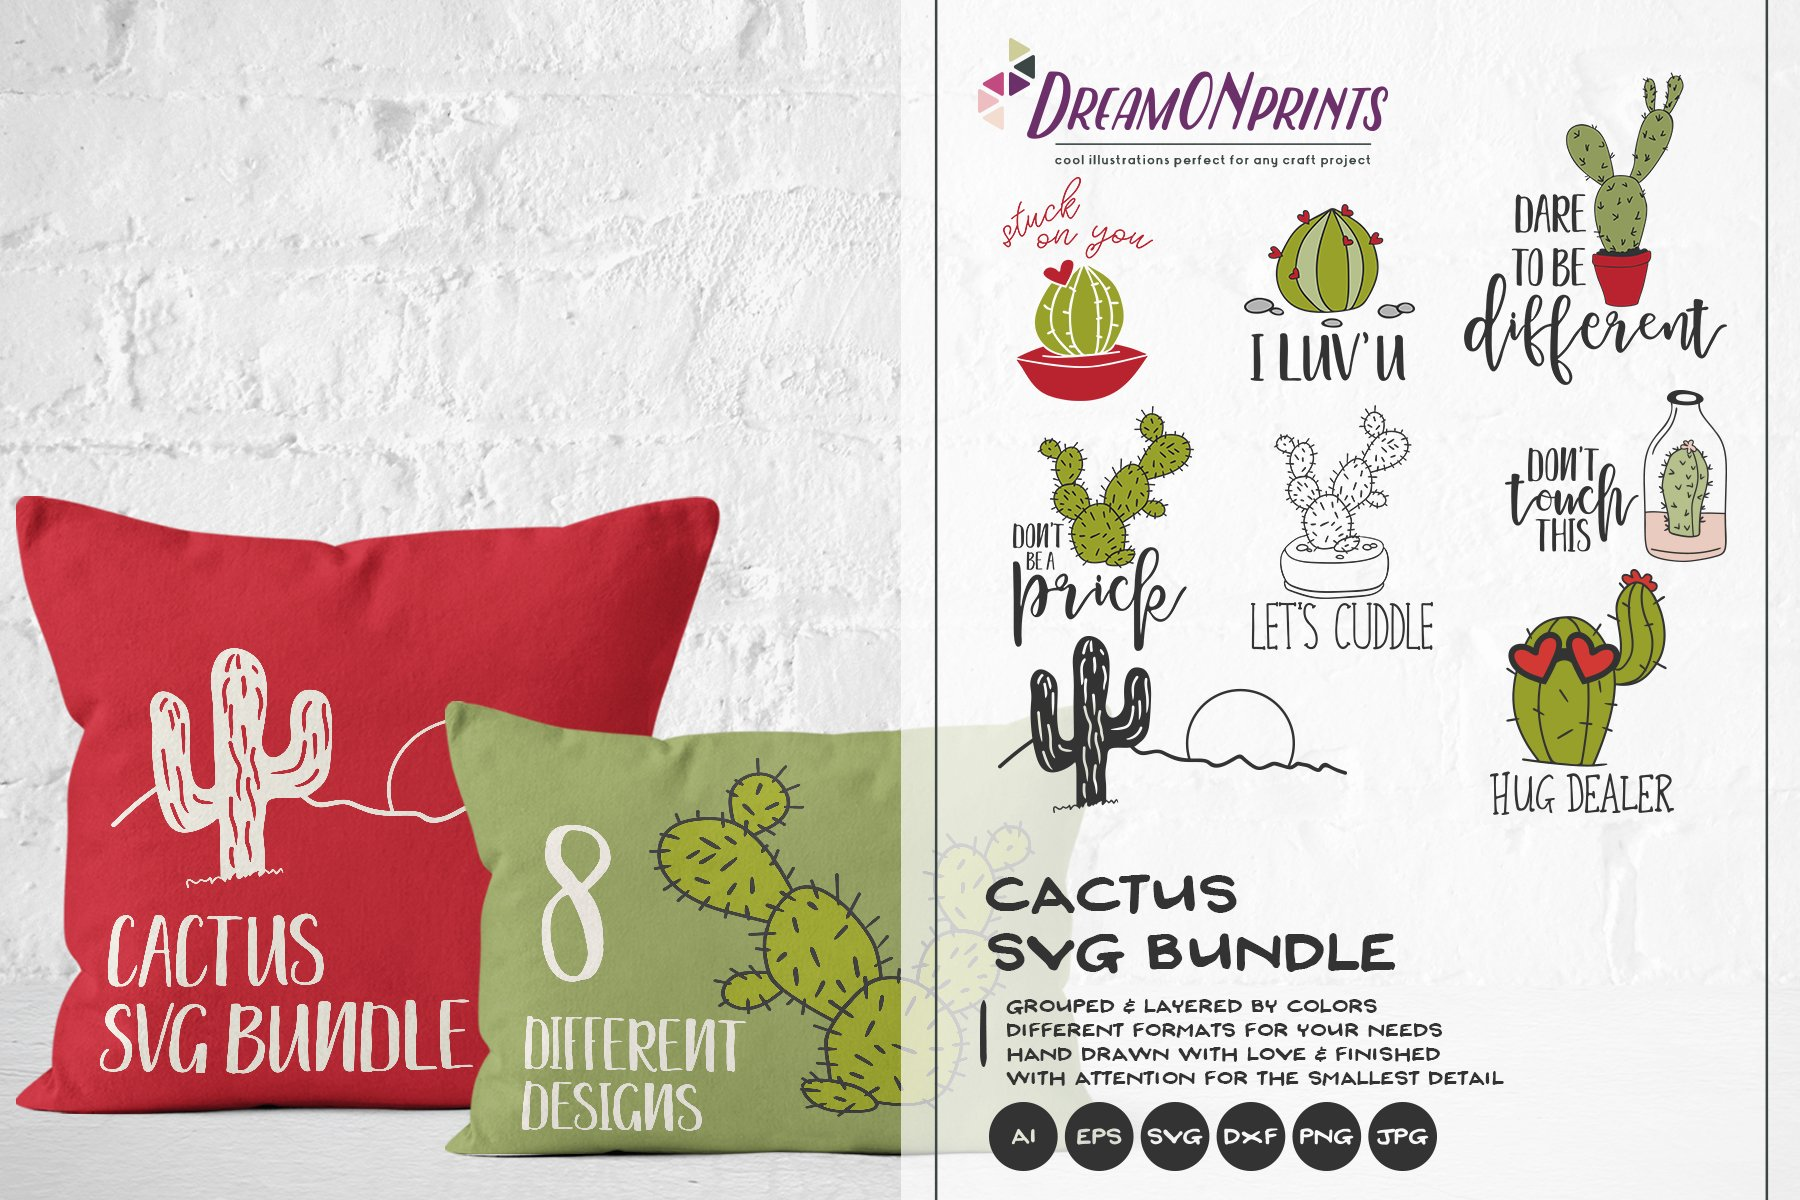 Cactus Svg Bundle Vector Cacti Svg Cut Files 192274 Illustrations Design Bundles